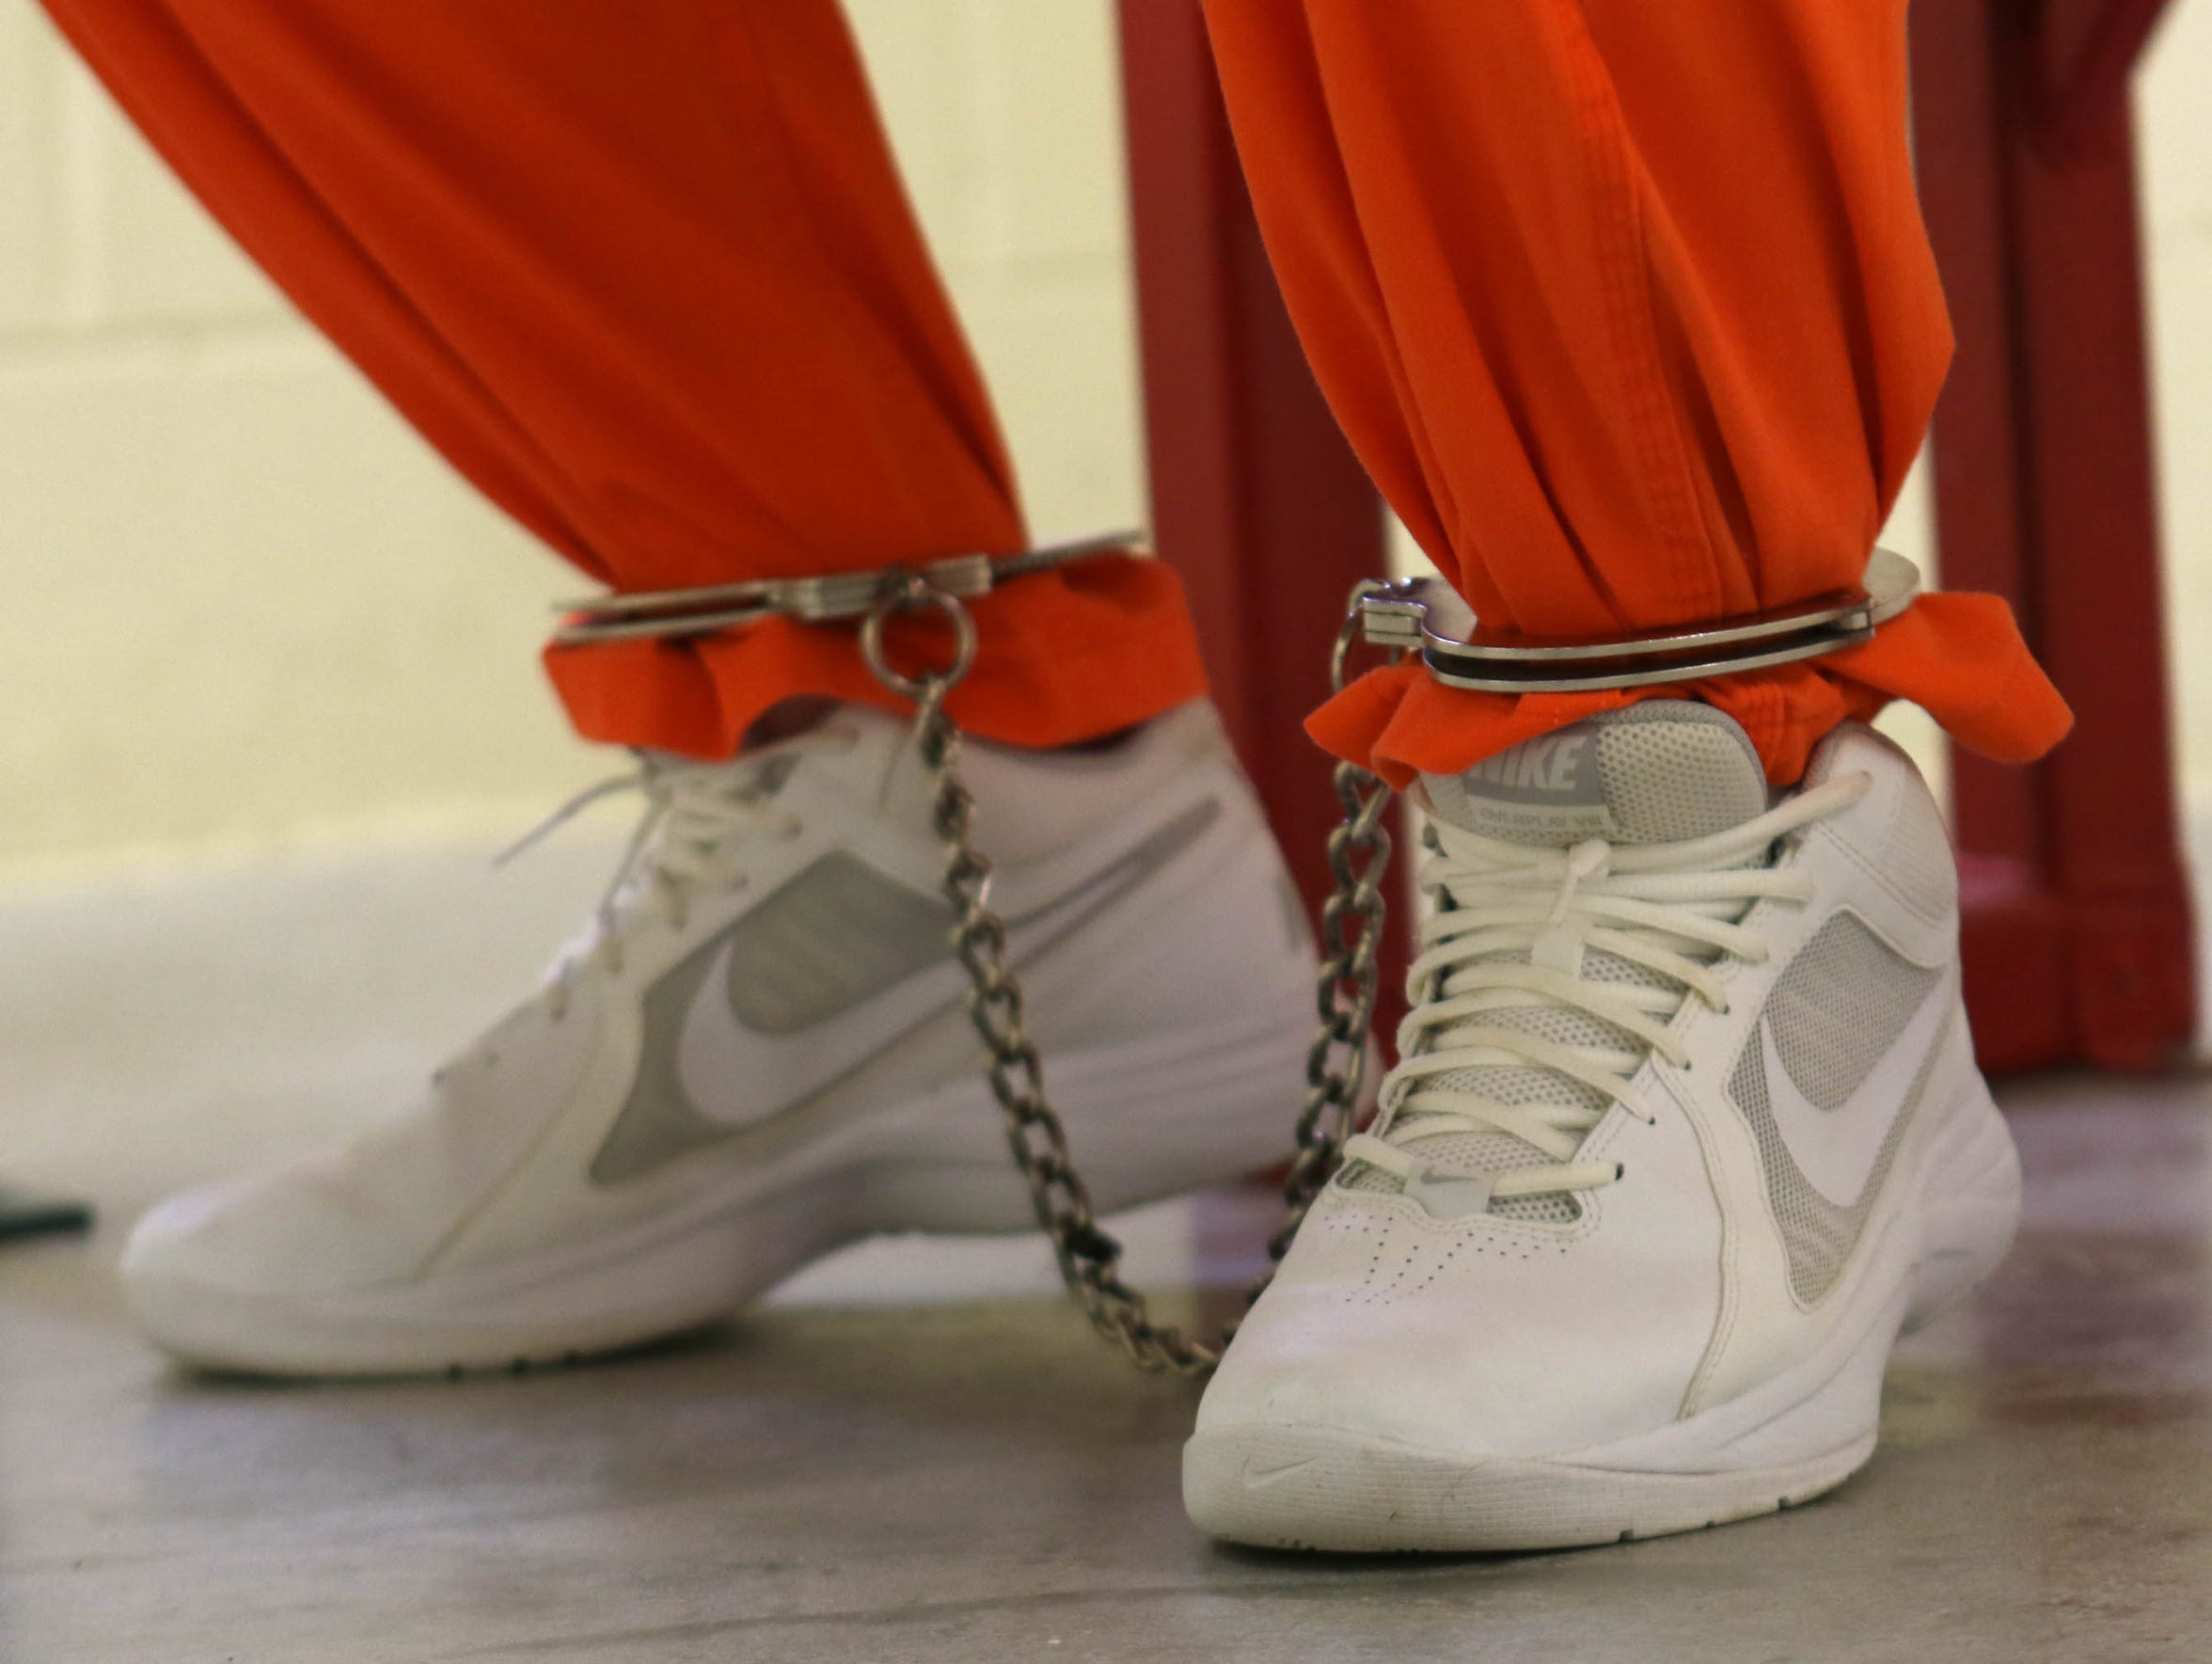 With his feet shackled, 28 year-old Justin Erskine,